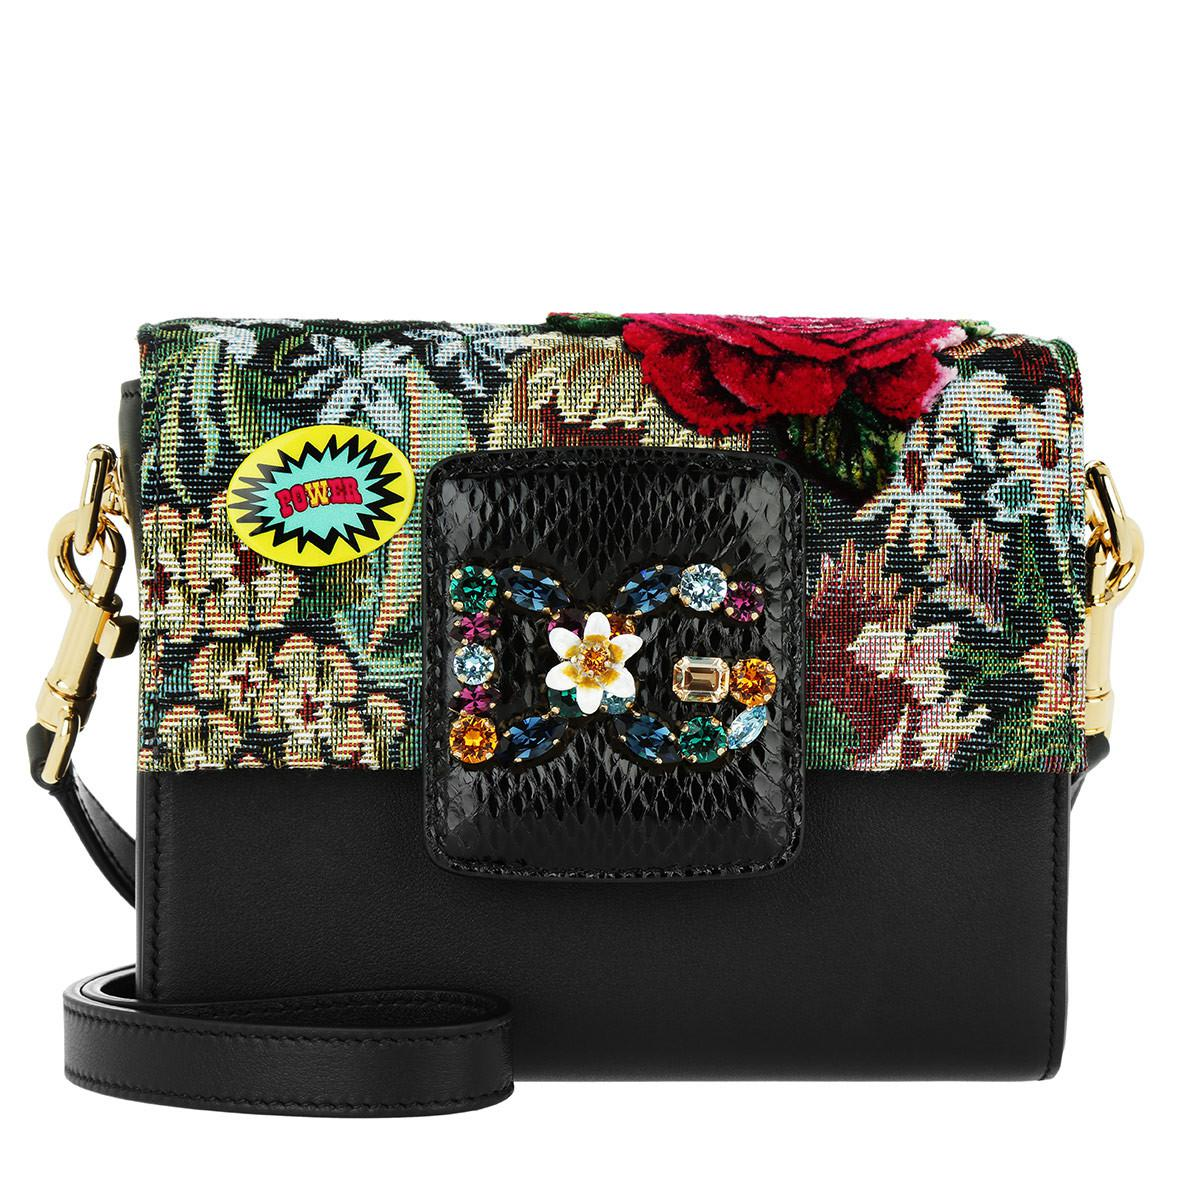 DG Millennials shoulder bag with appliqu UCqK7Xx68